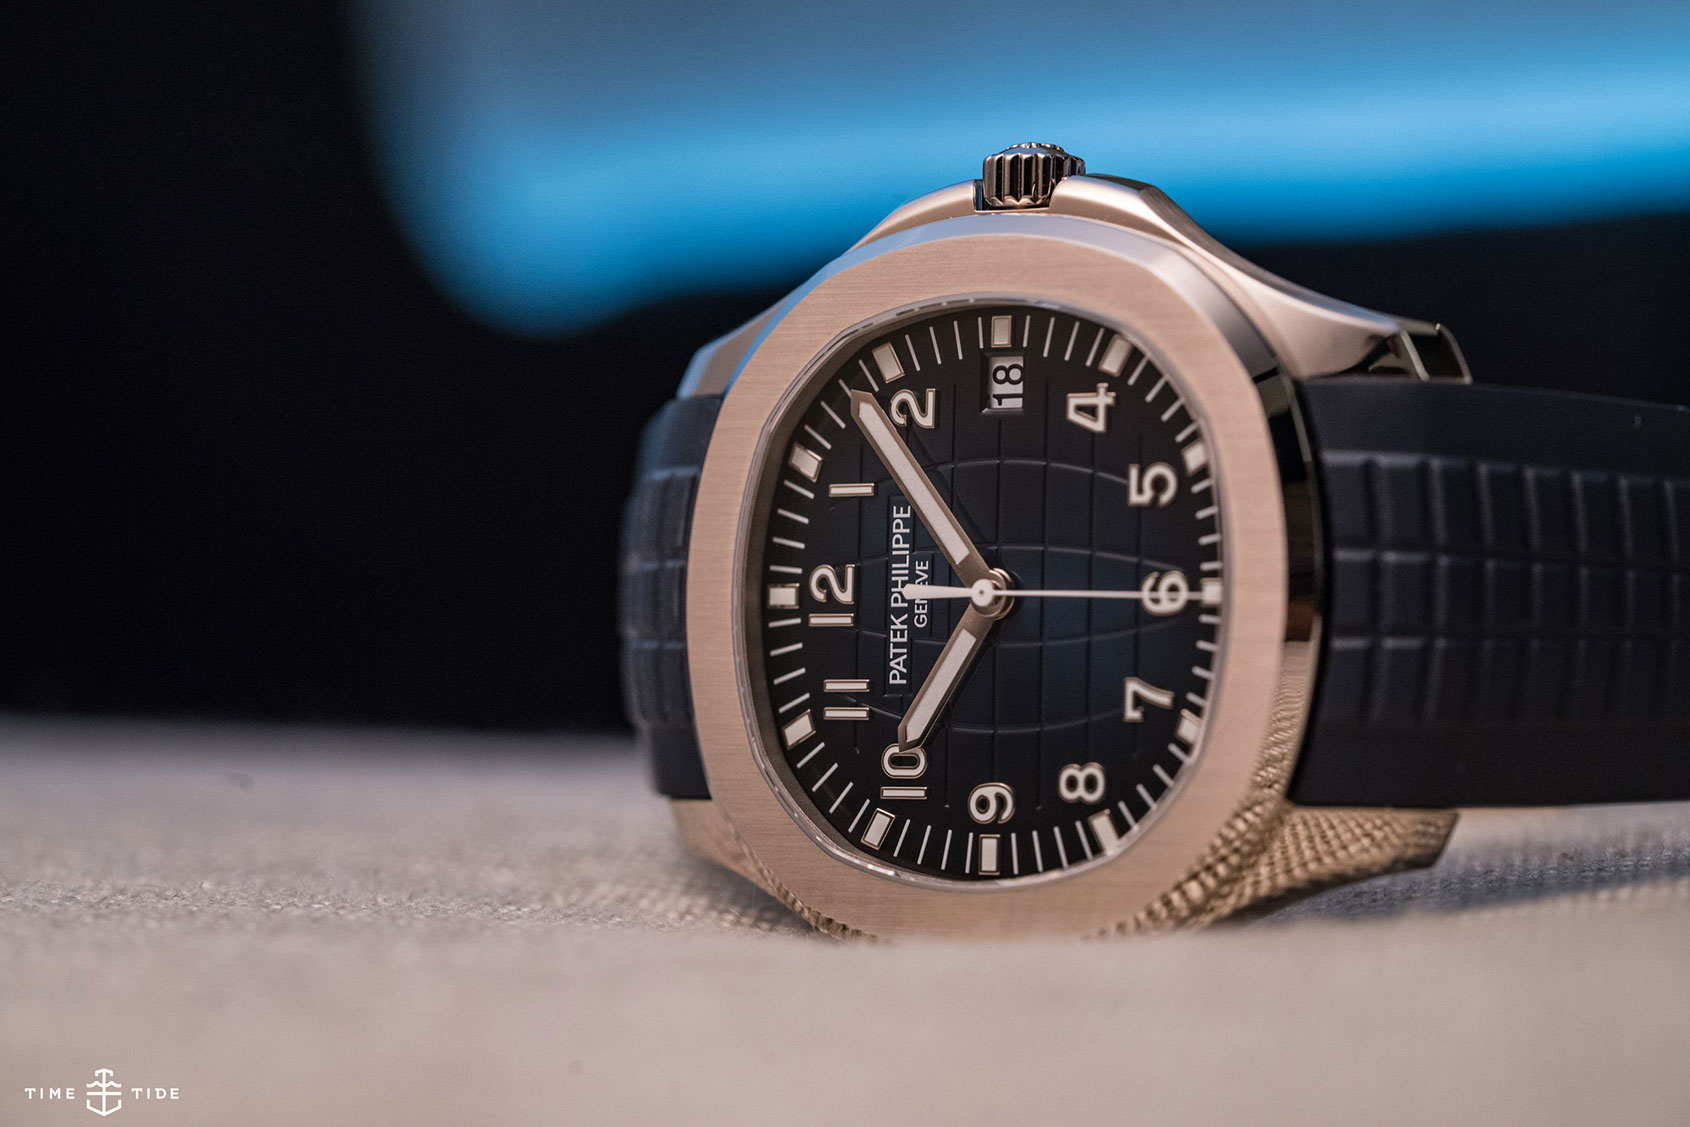 This is why the Patek Philippe Aquanaut 20th Birthday edition was such an important signal of things to come